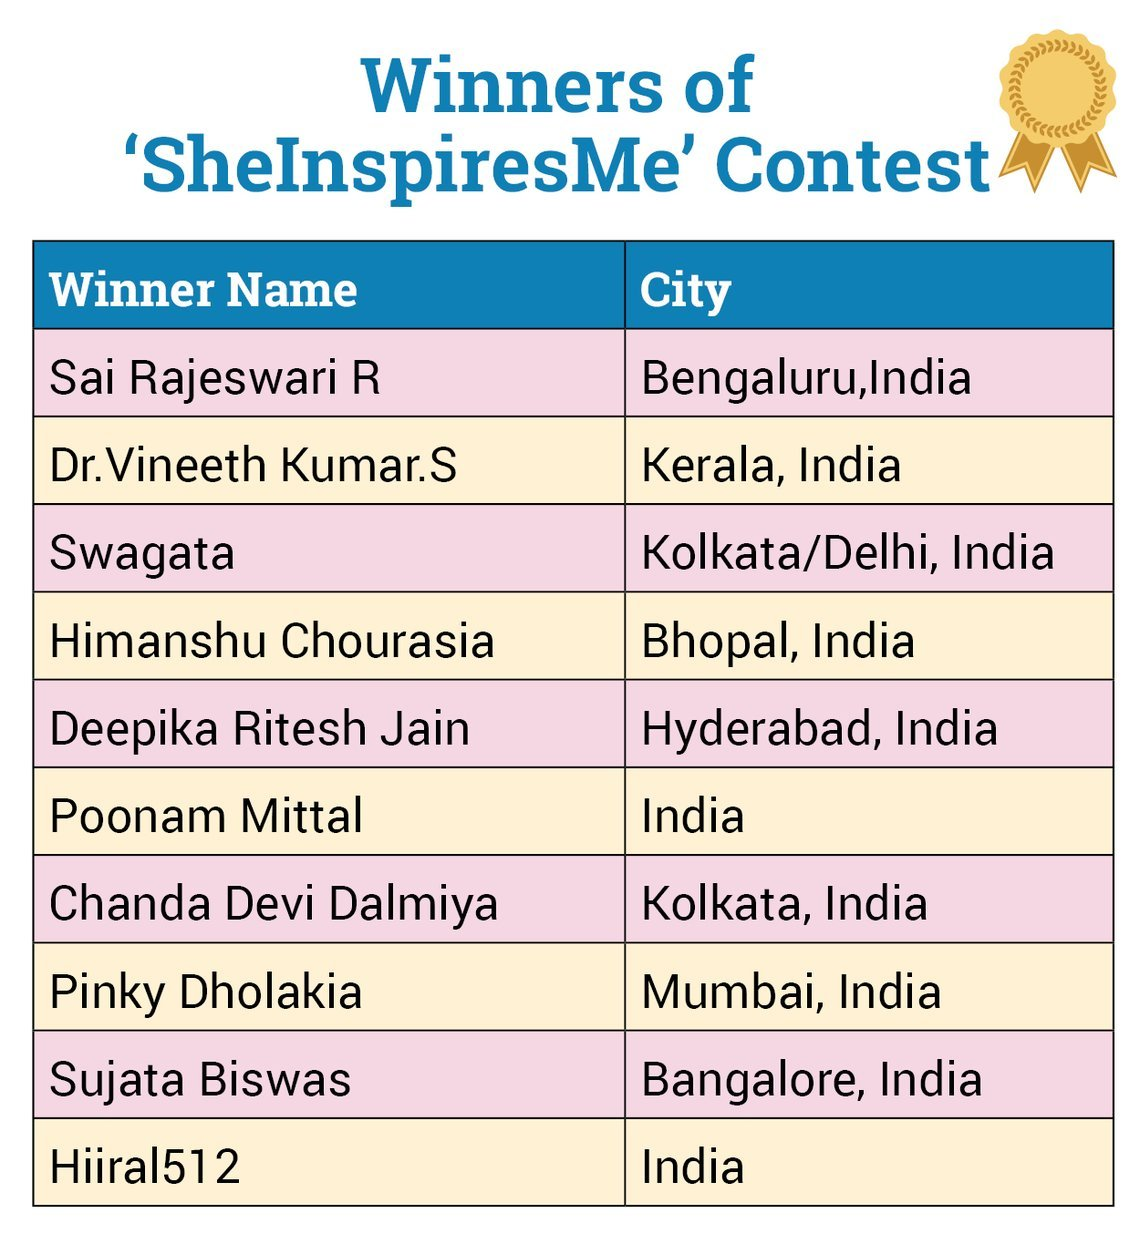 ParentCircle Announces Winners of the #SheInspiresMe Contest